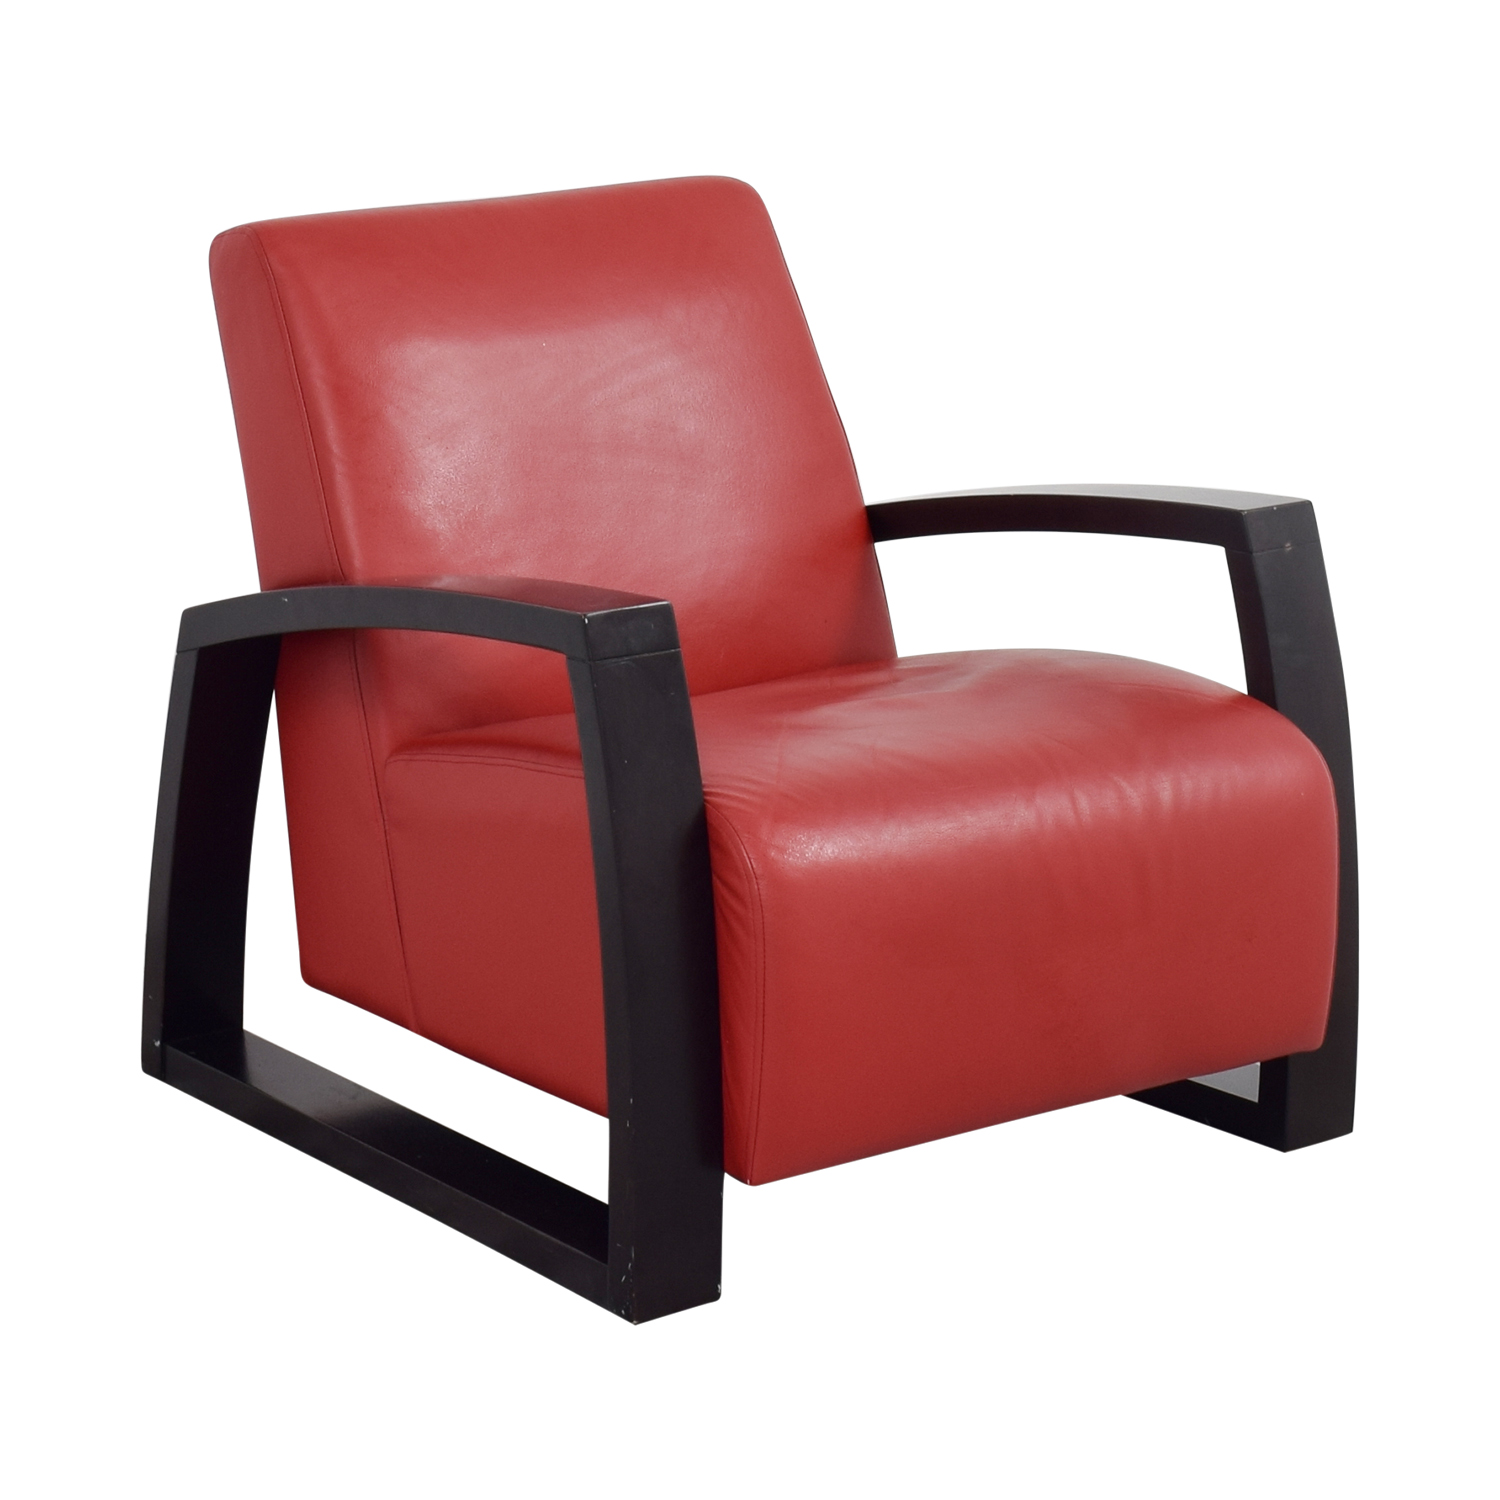 87 OFF  Cantoni Cantoni Red Leather Accent Chair  Chairs